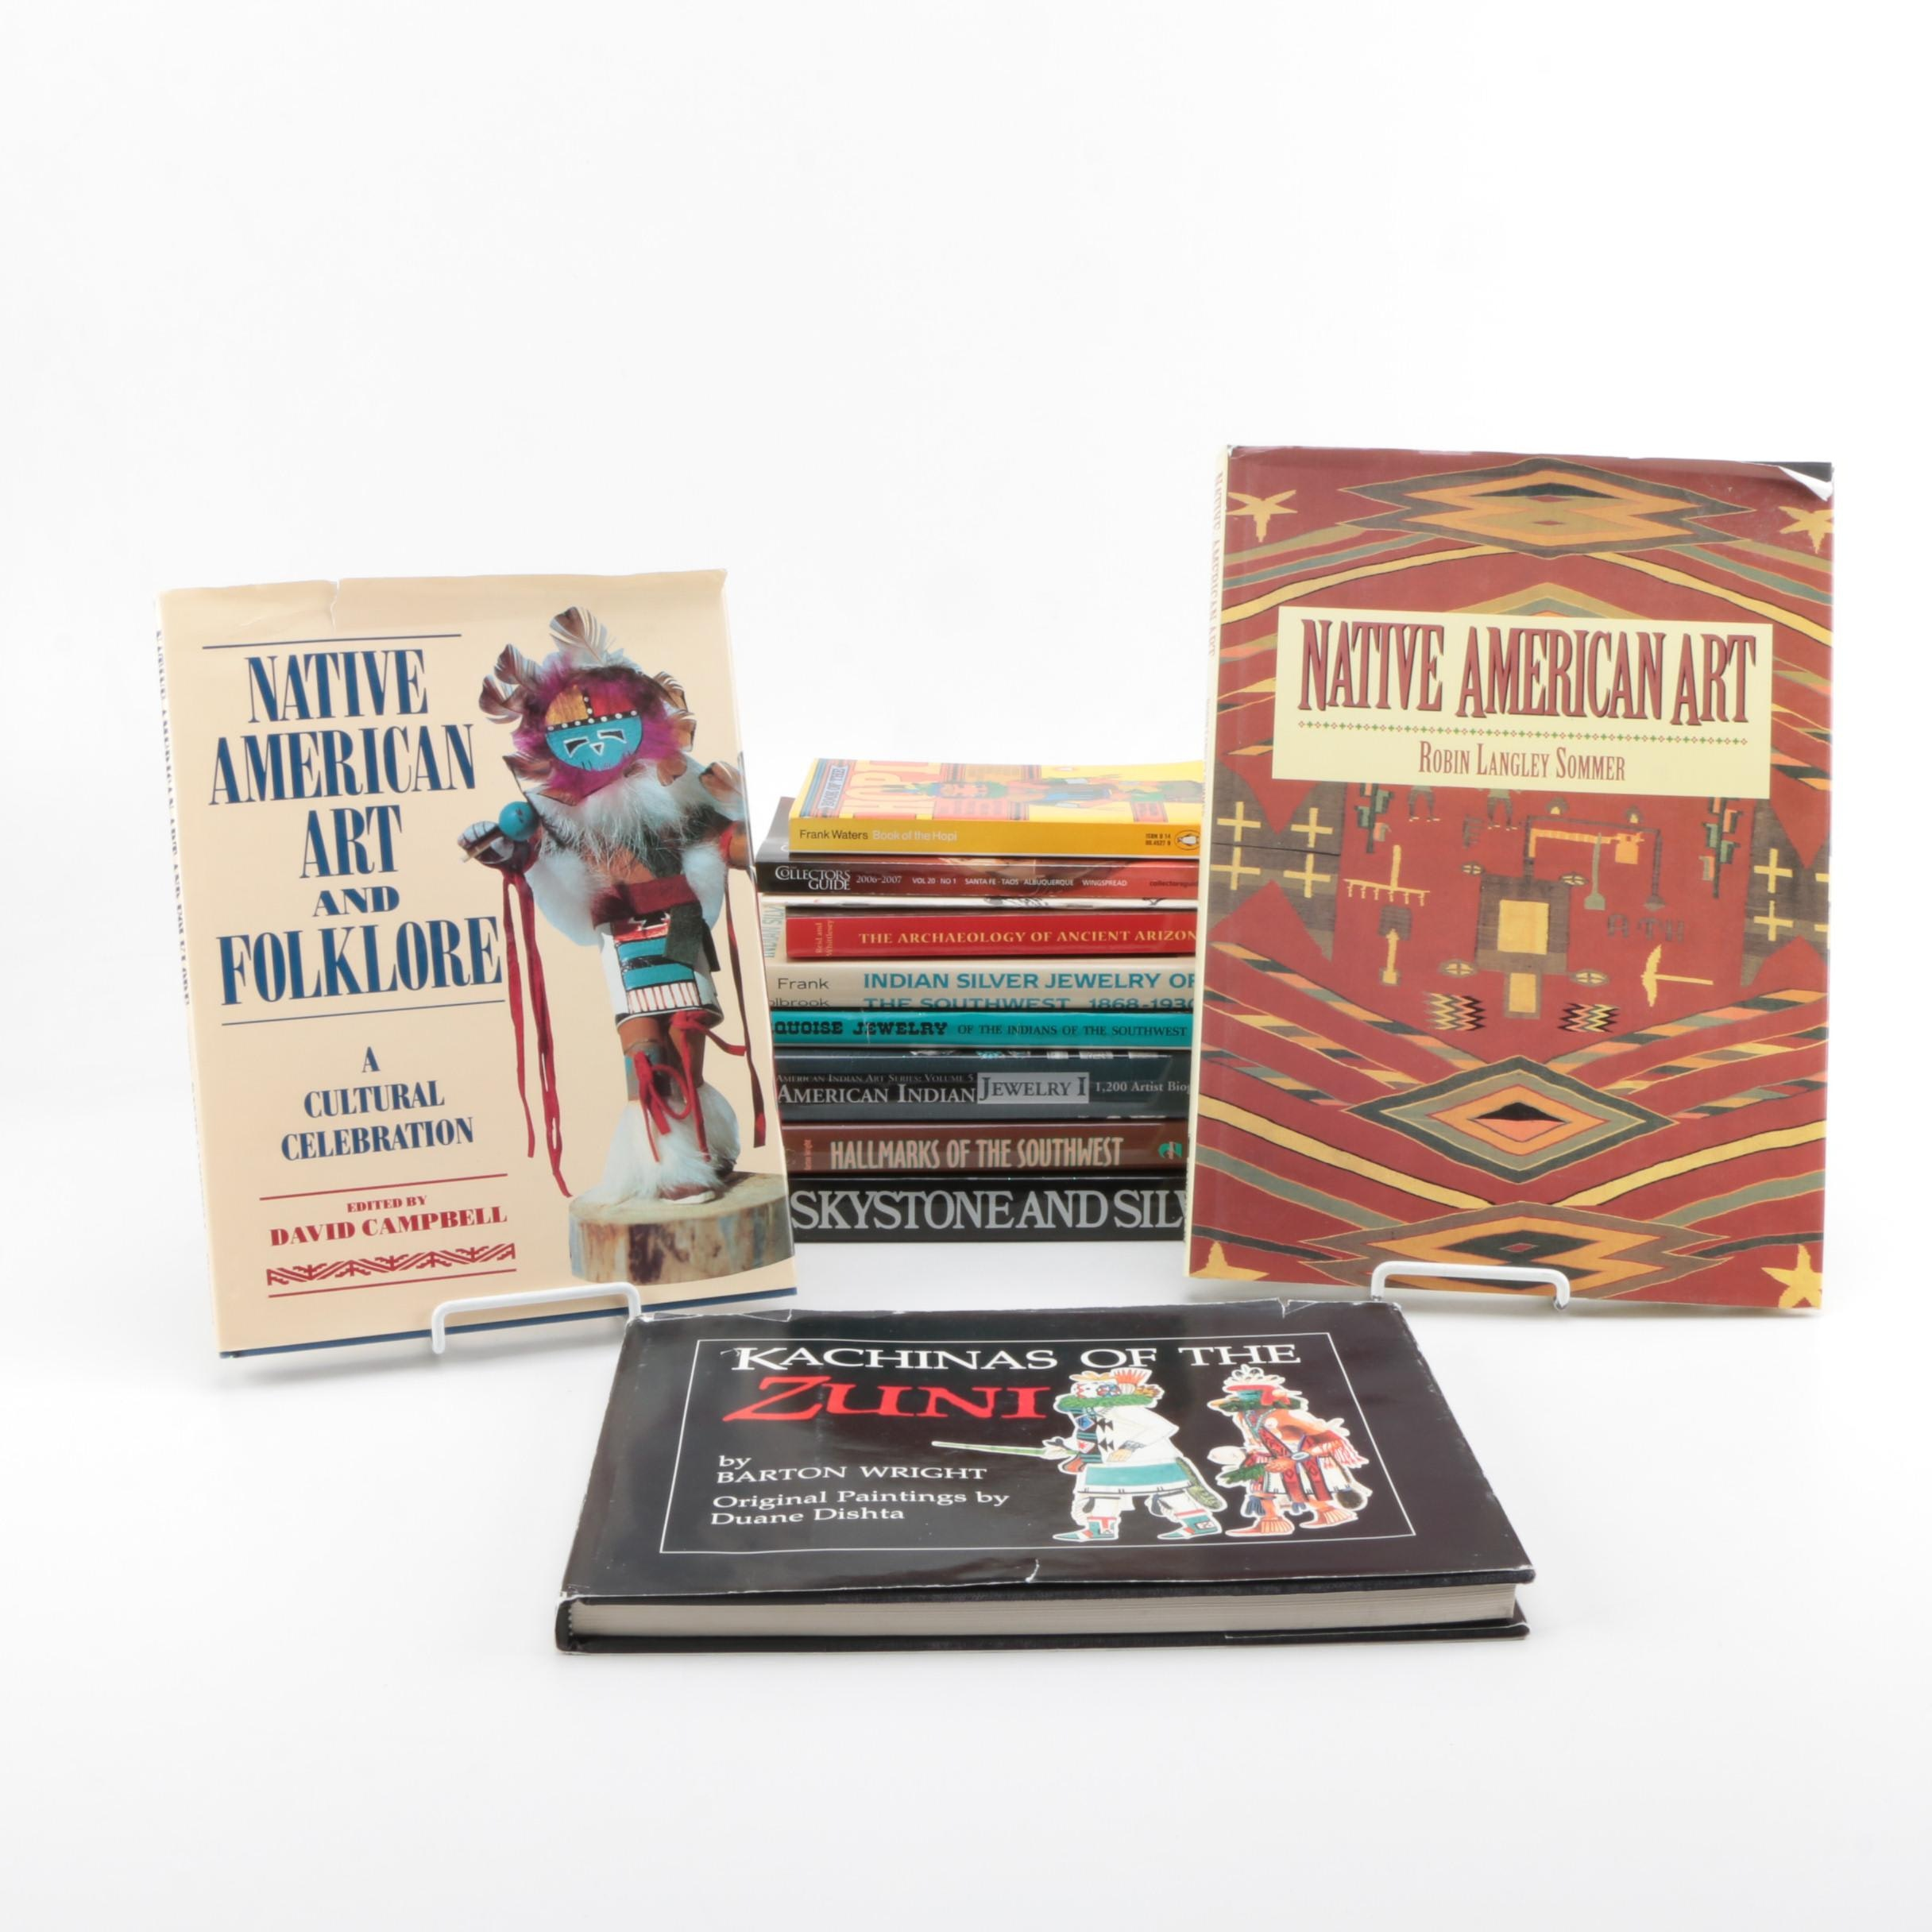 Collection of Books on Native American Culture and Art